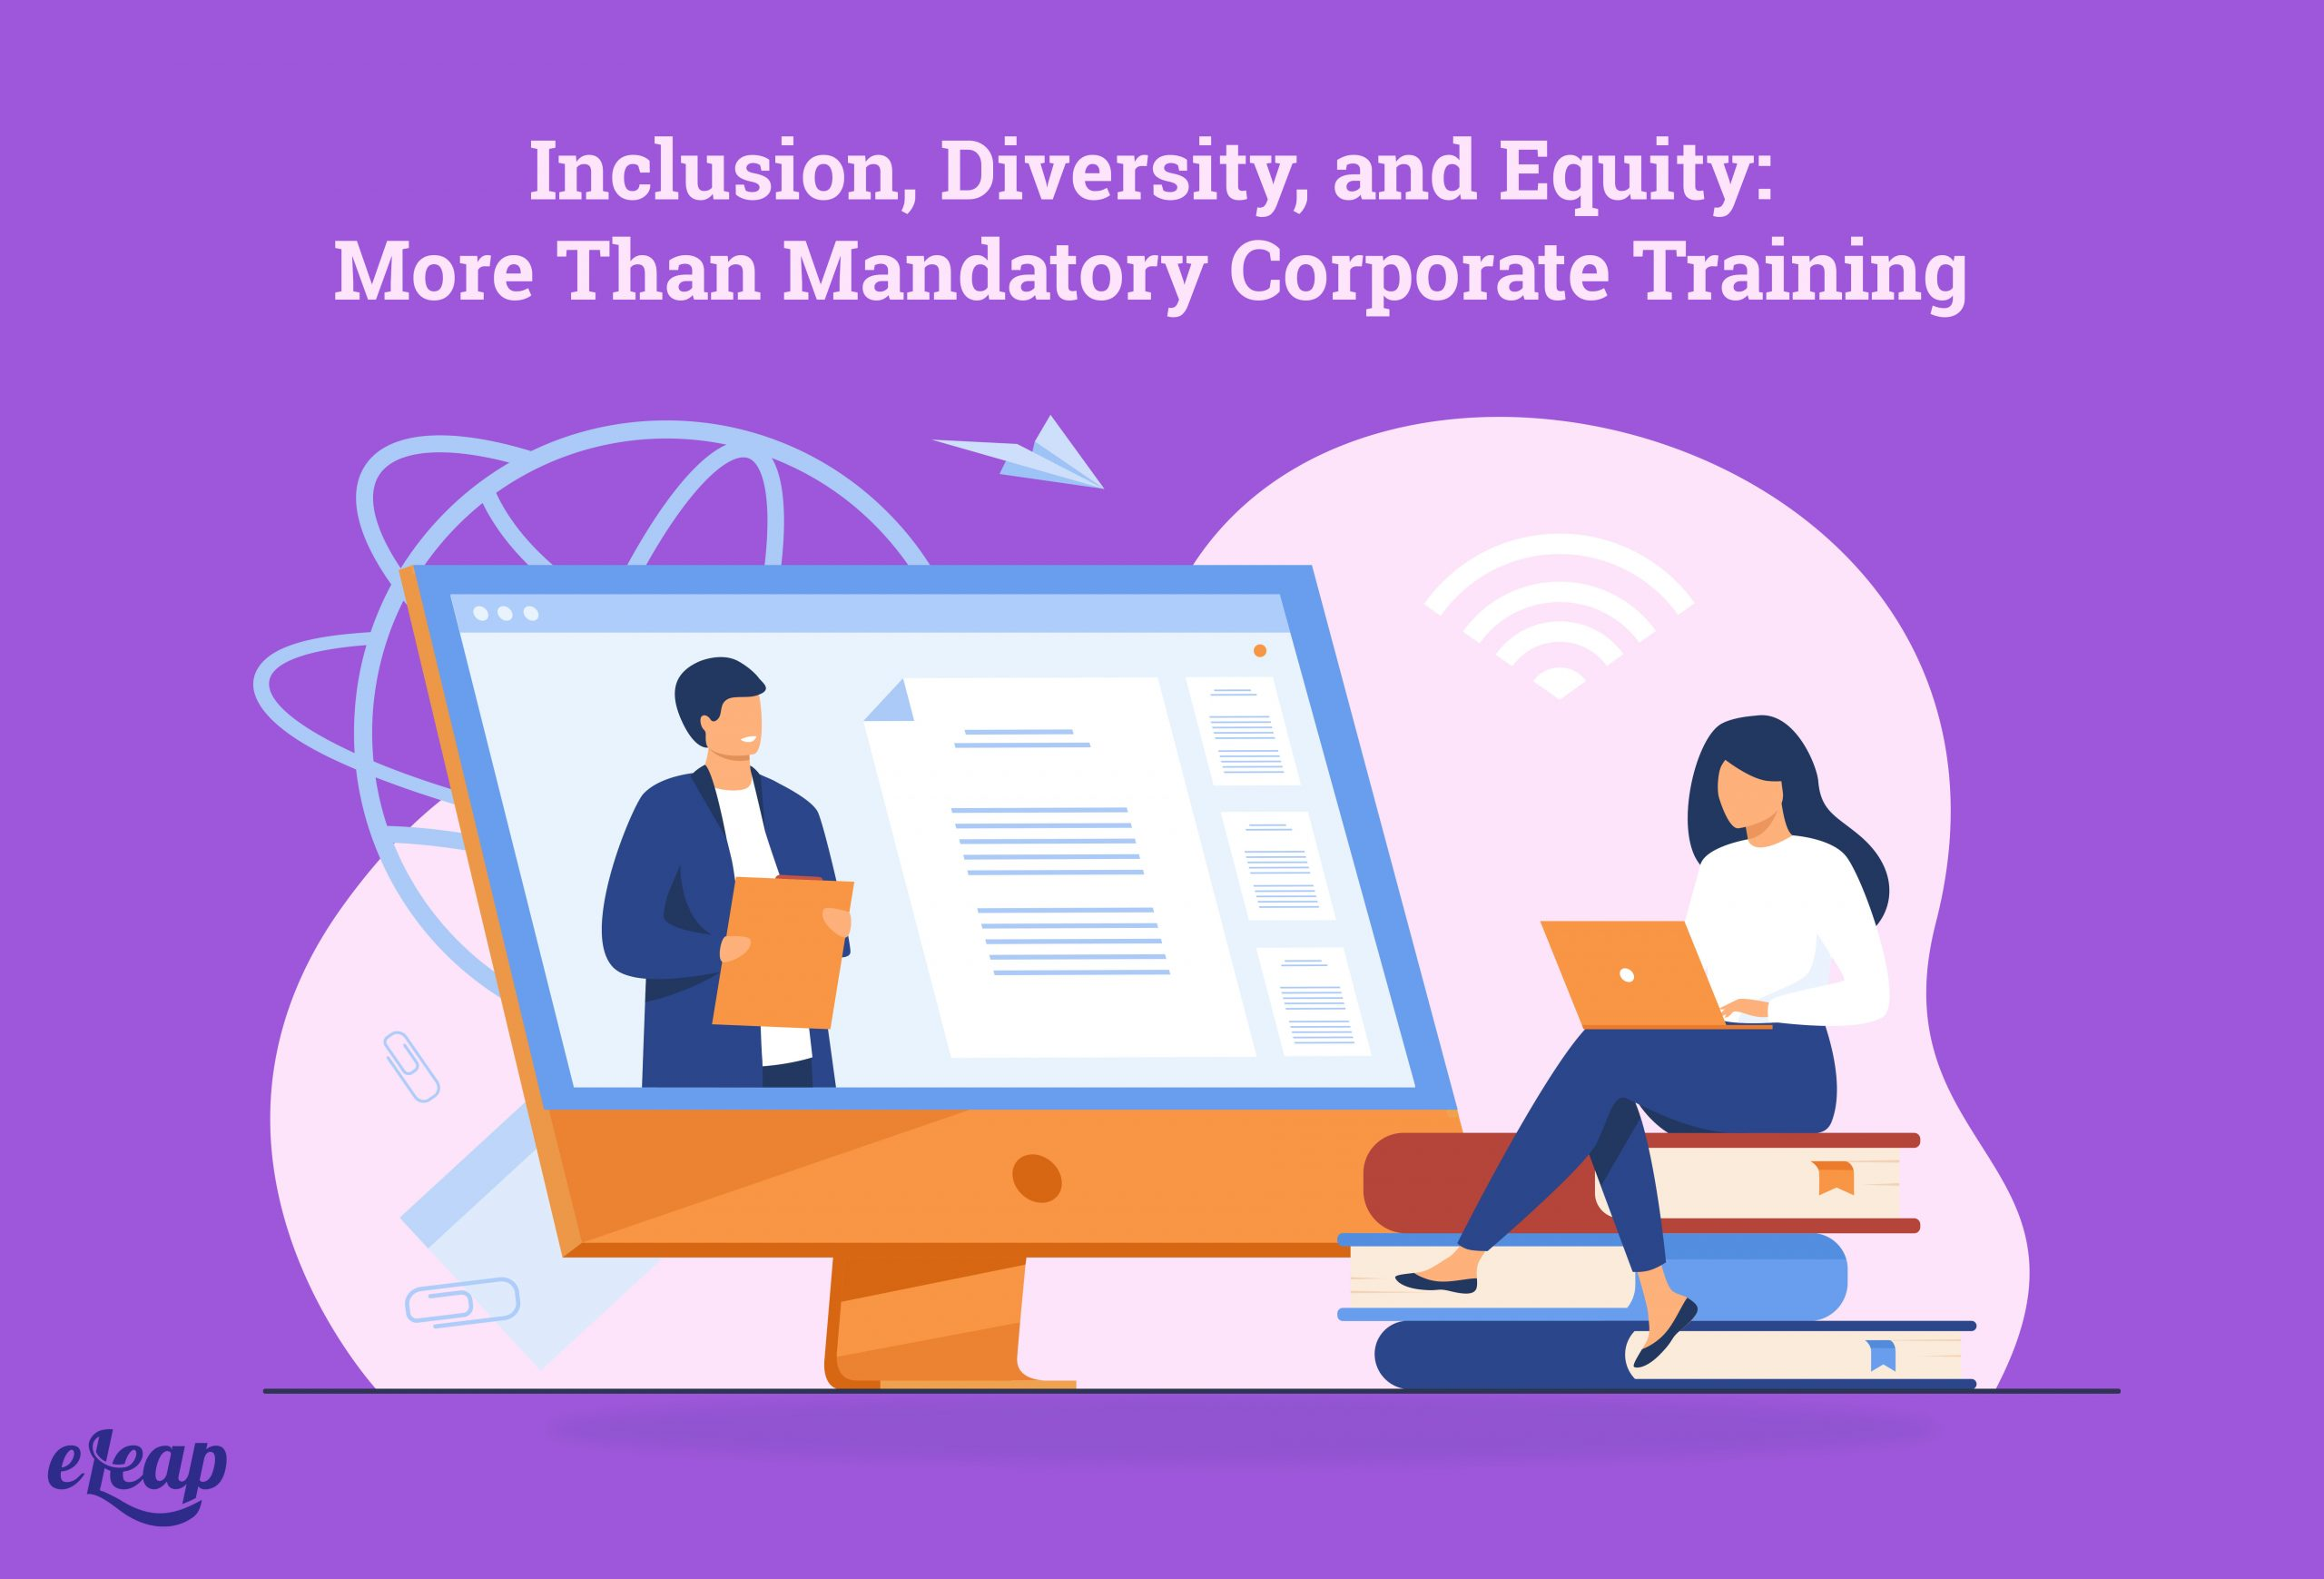 Inclusion, Diversity, and Equity: More Than Mandatory Corporate Training